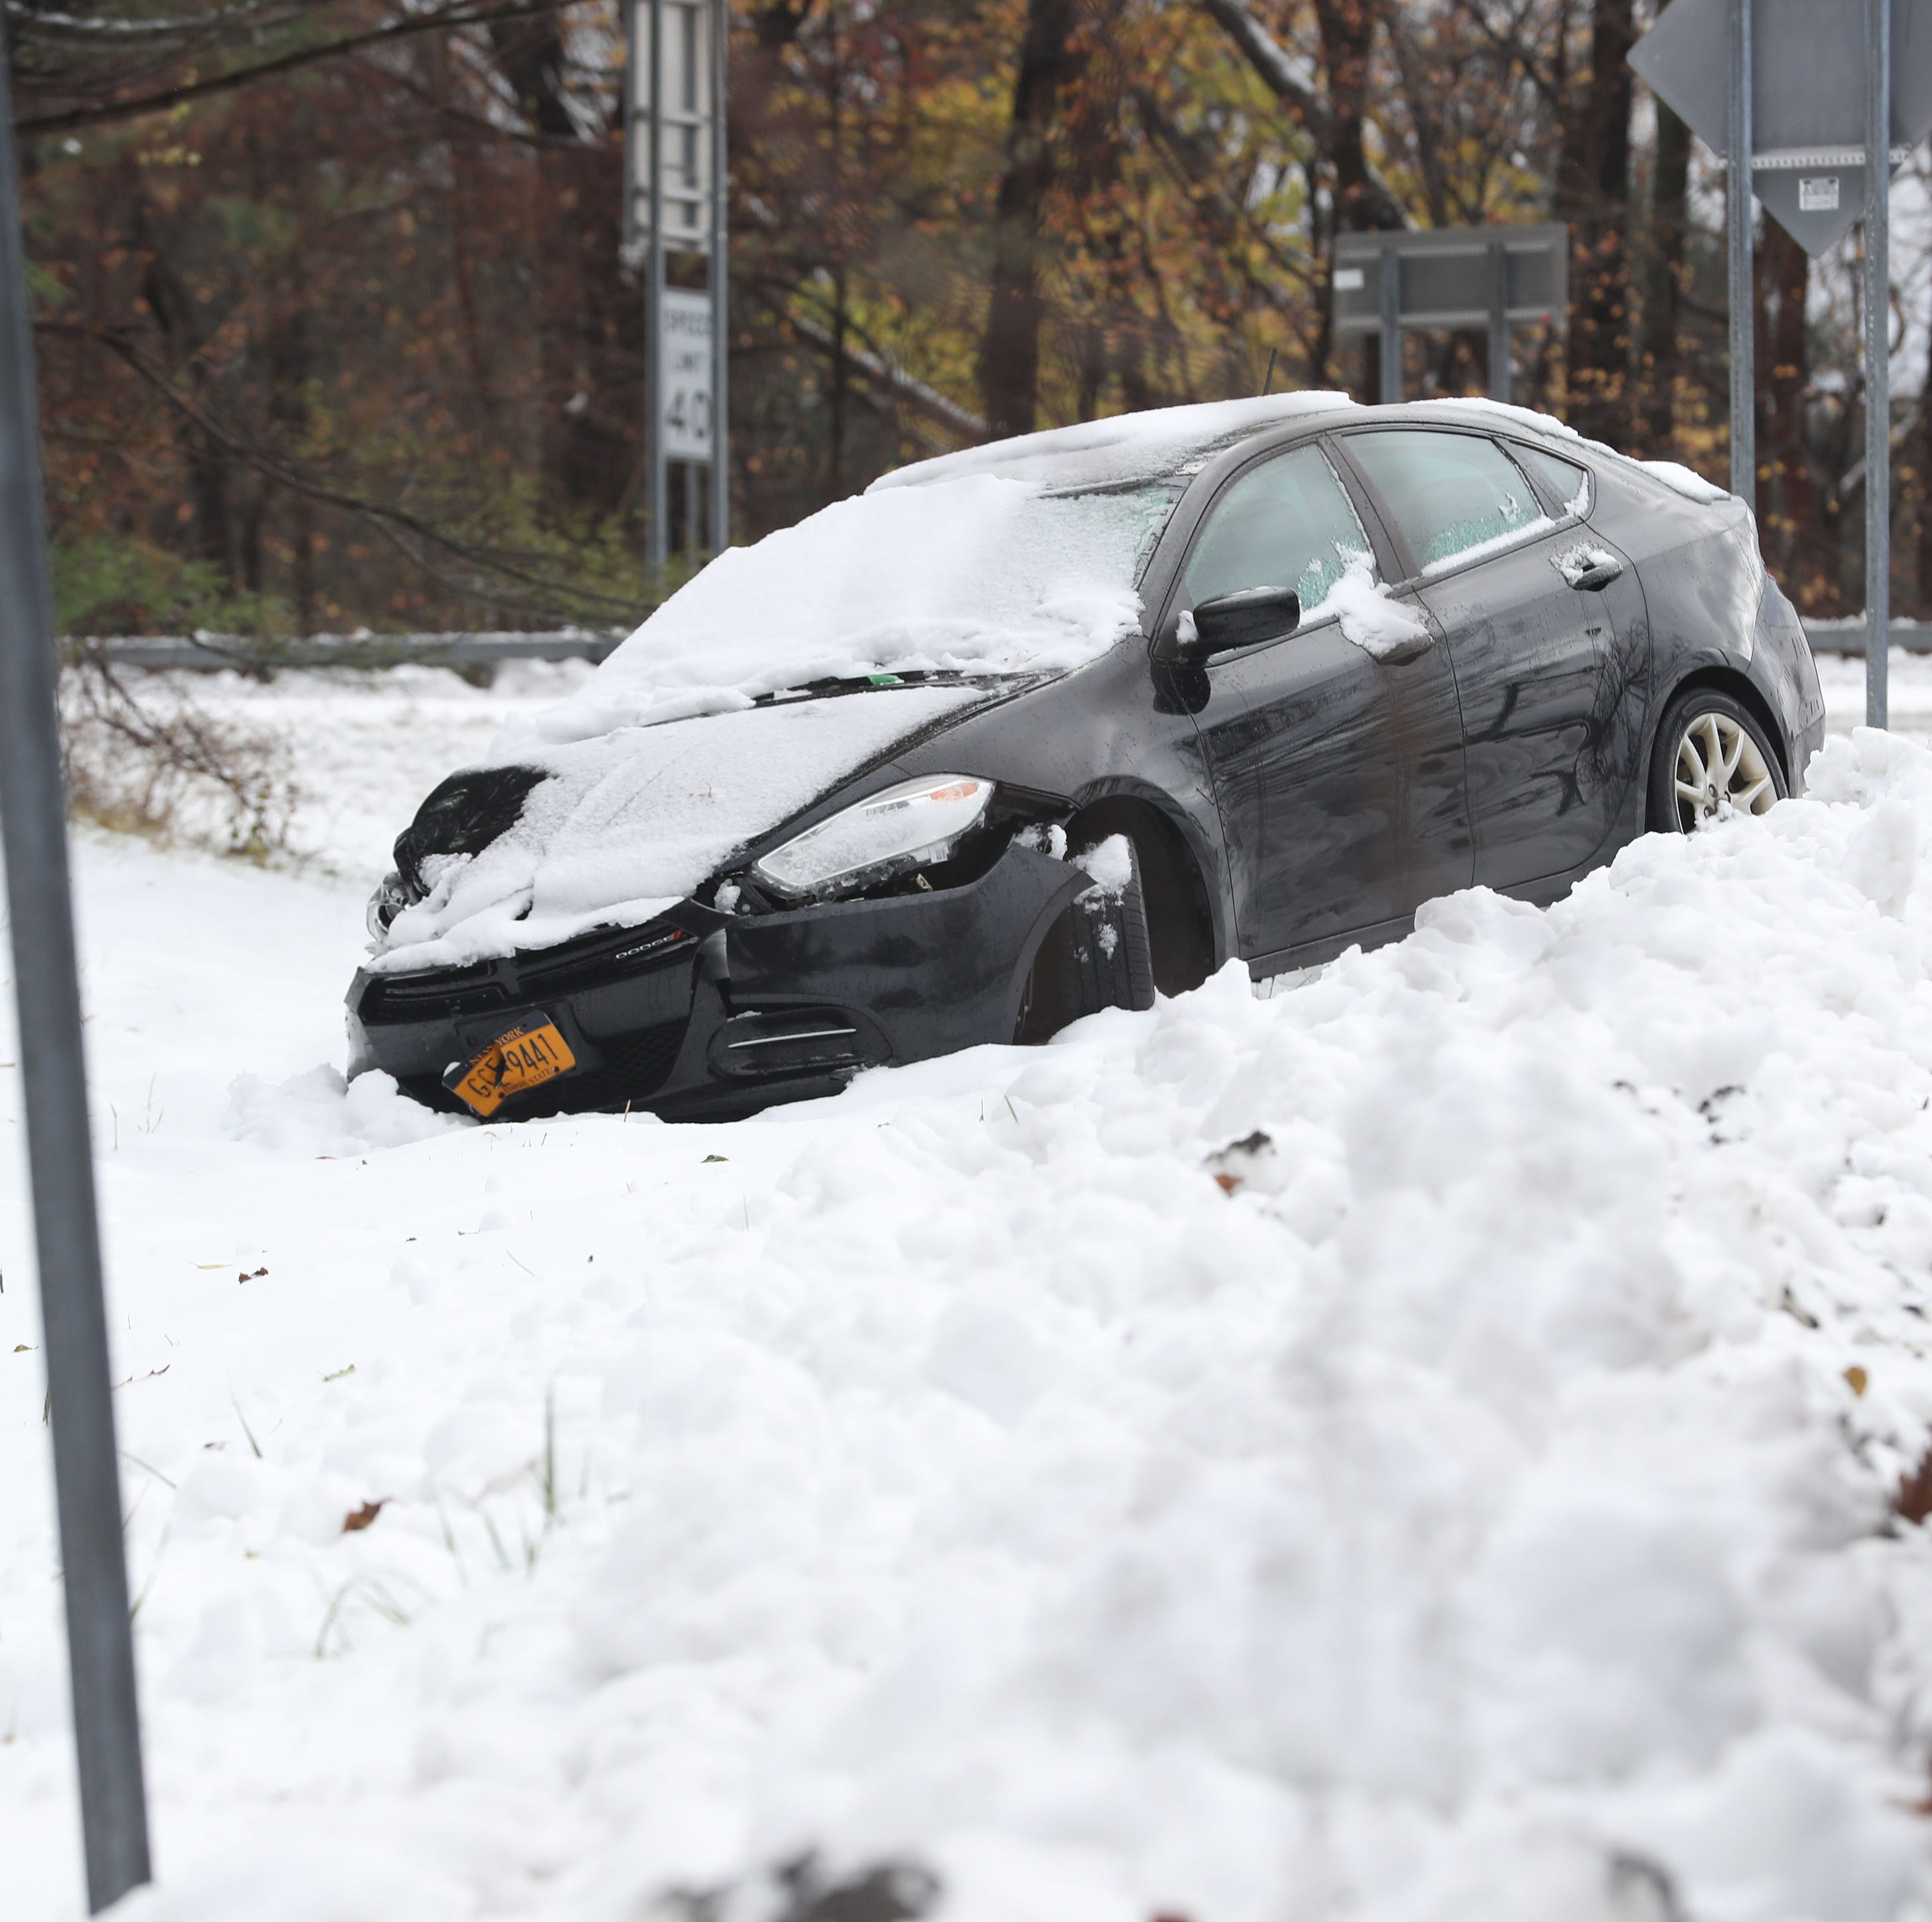 Left your vehicle by the side of the road during the storm: Now what?